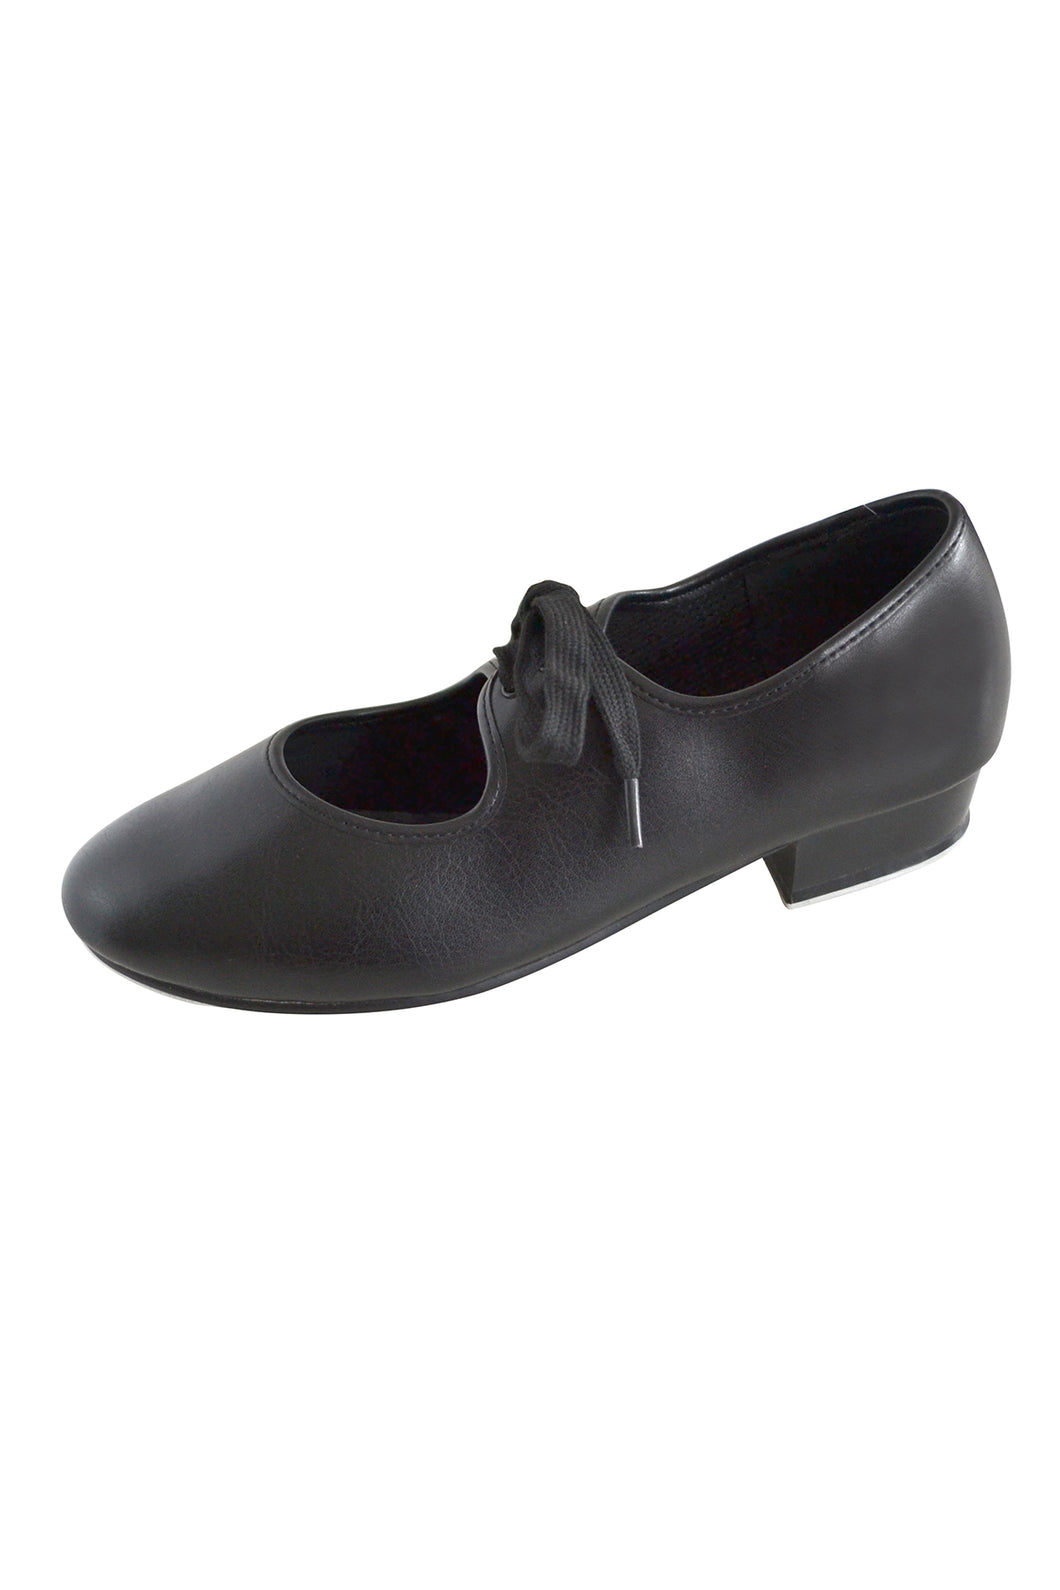 PU Roch Valley Tap Shoes